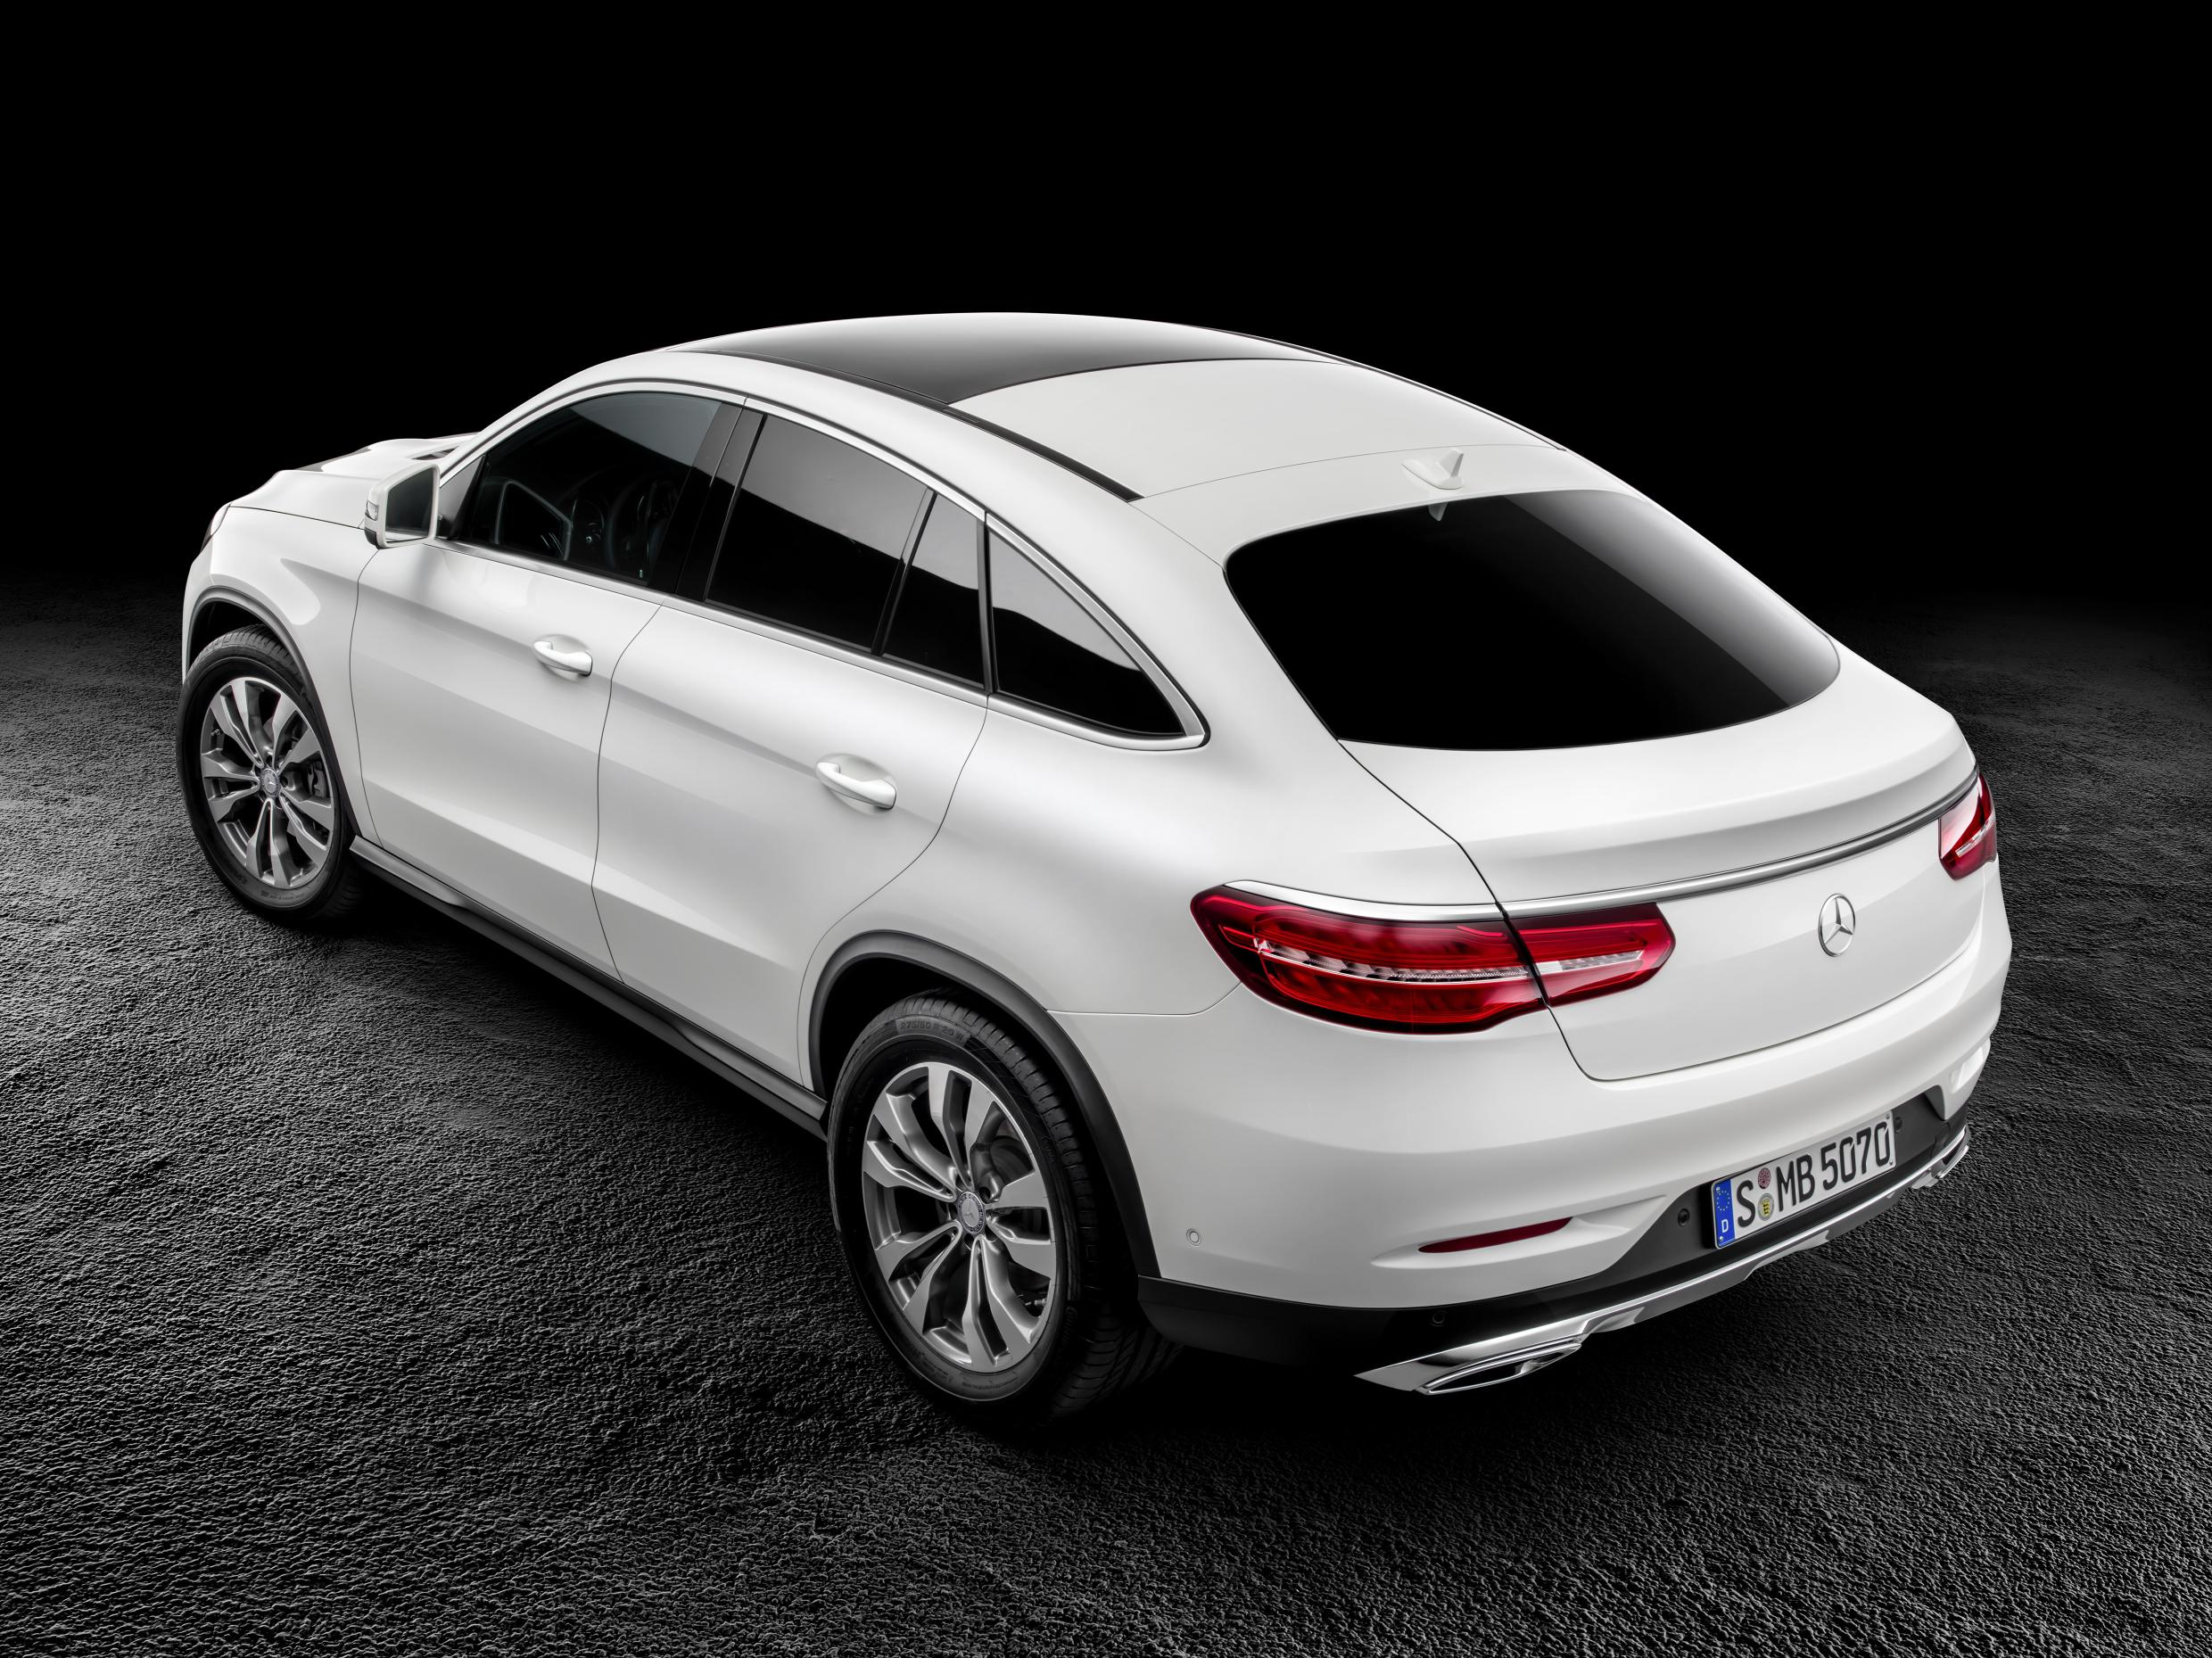 Mercedes Benz Gle Coupe Is Not The Bmw X6 You Were Looking For Video Autoevolution